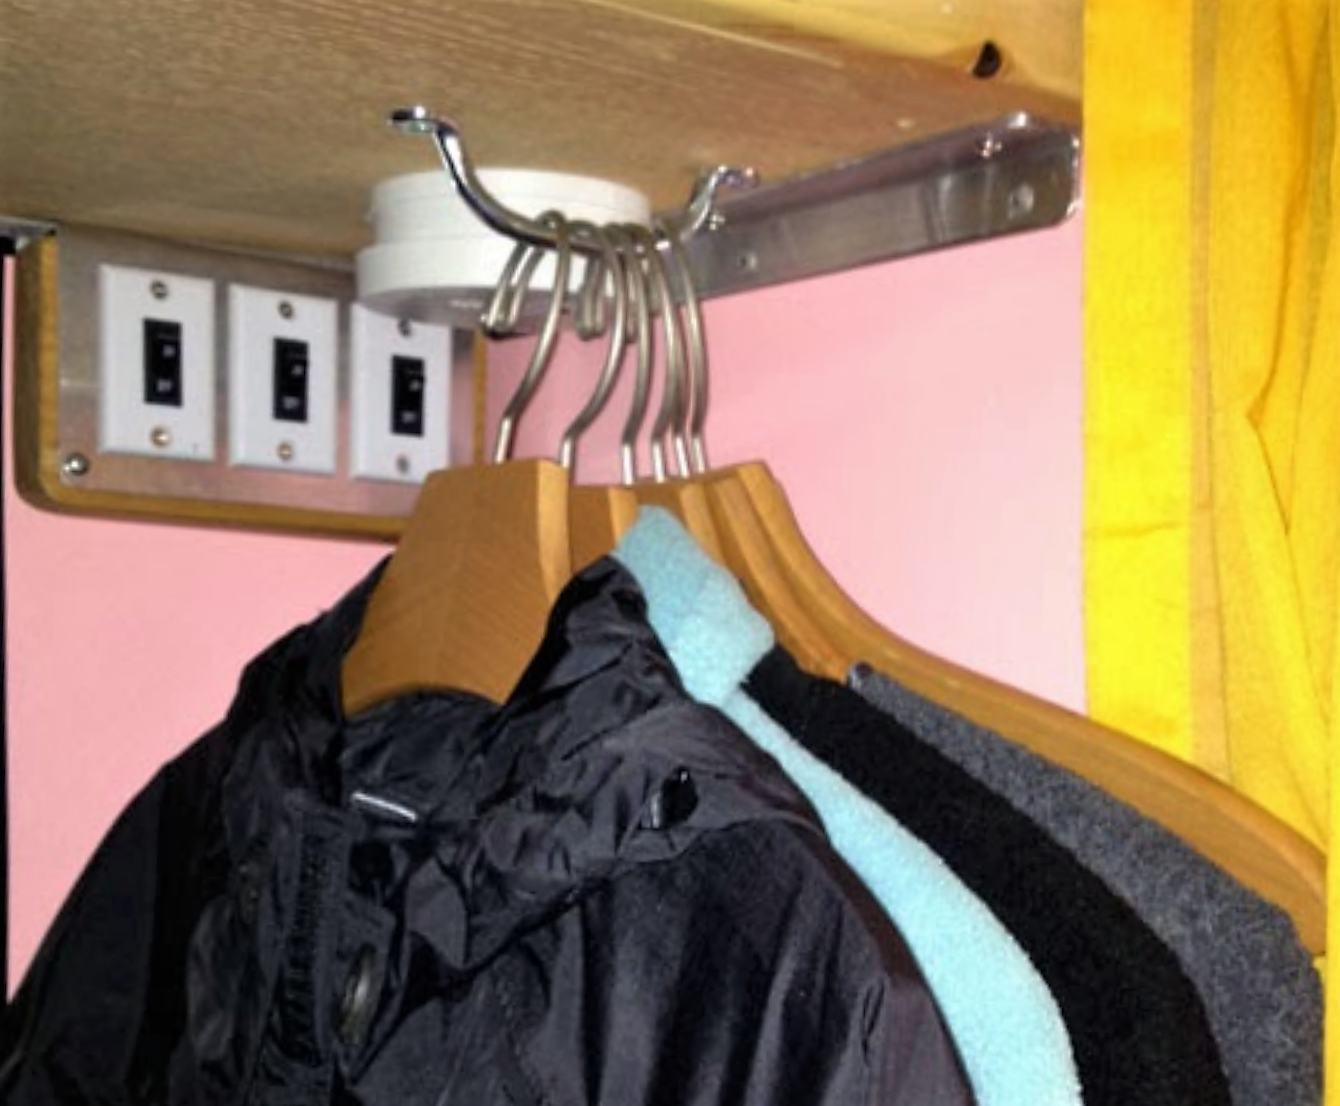 MODS – Coat hanger ideas for small spaces – My Motorhome Mods